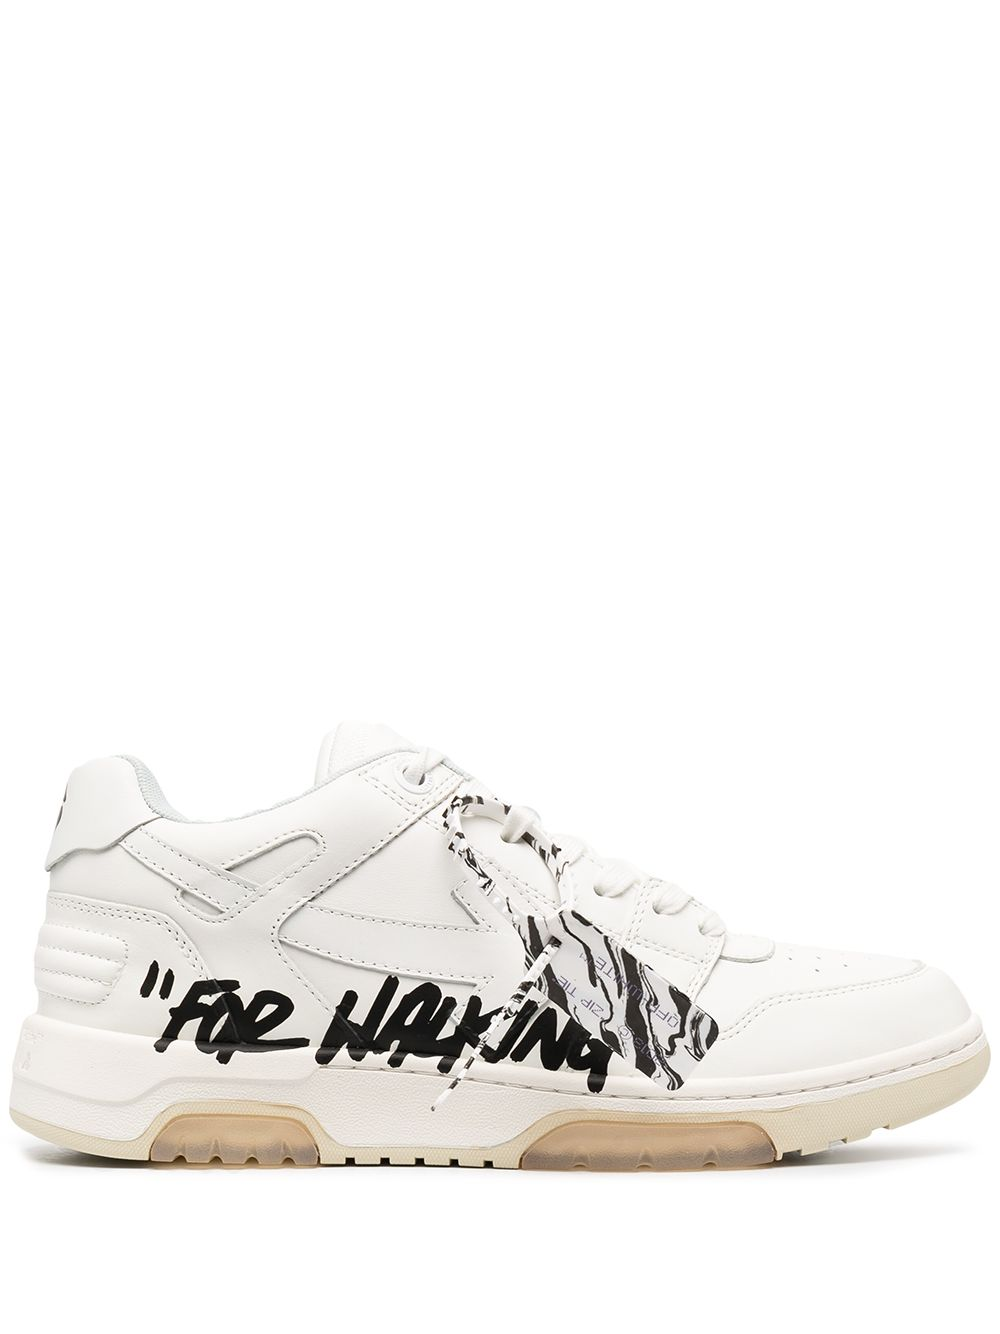 OFF-WHITE MEN OUT OF OFFICE CALF LEATHER SNEAKERS